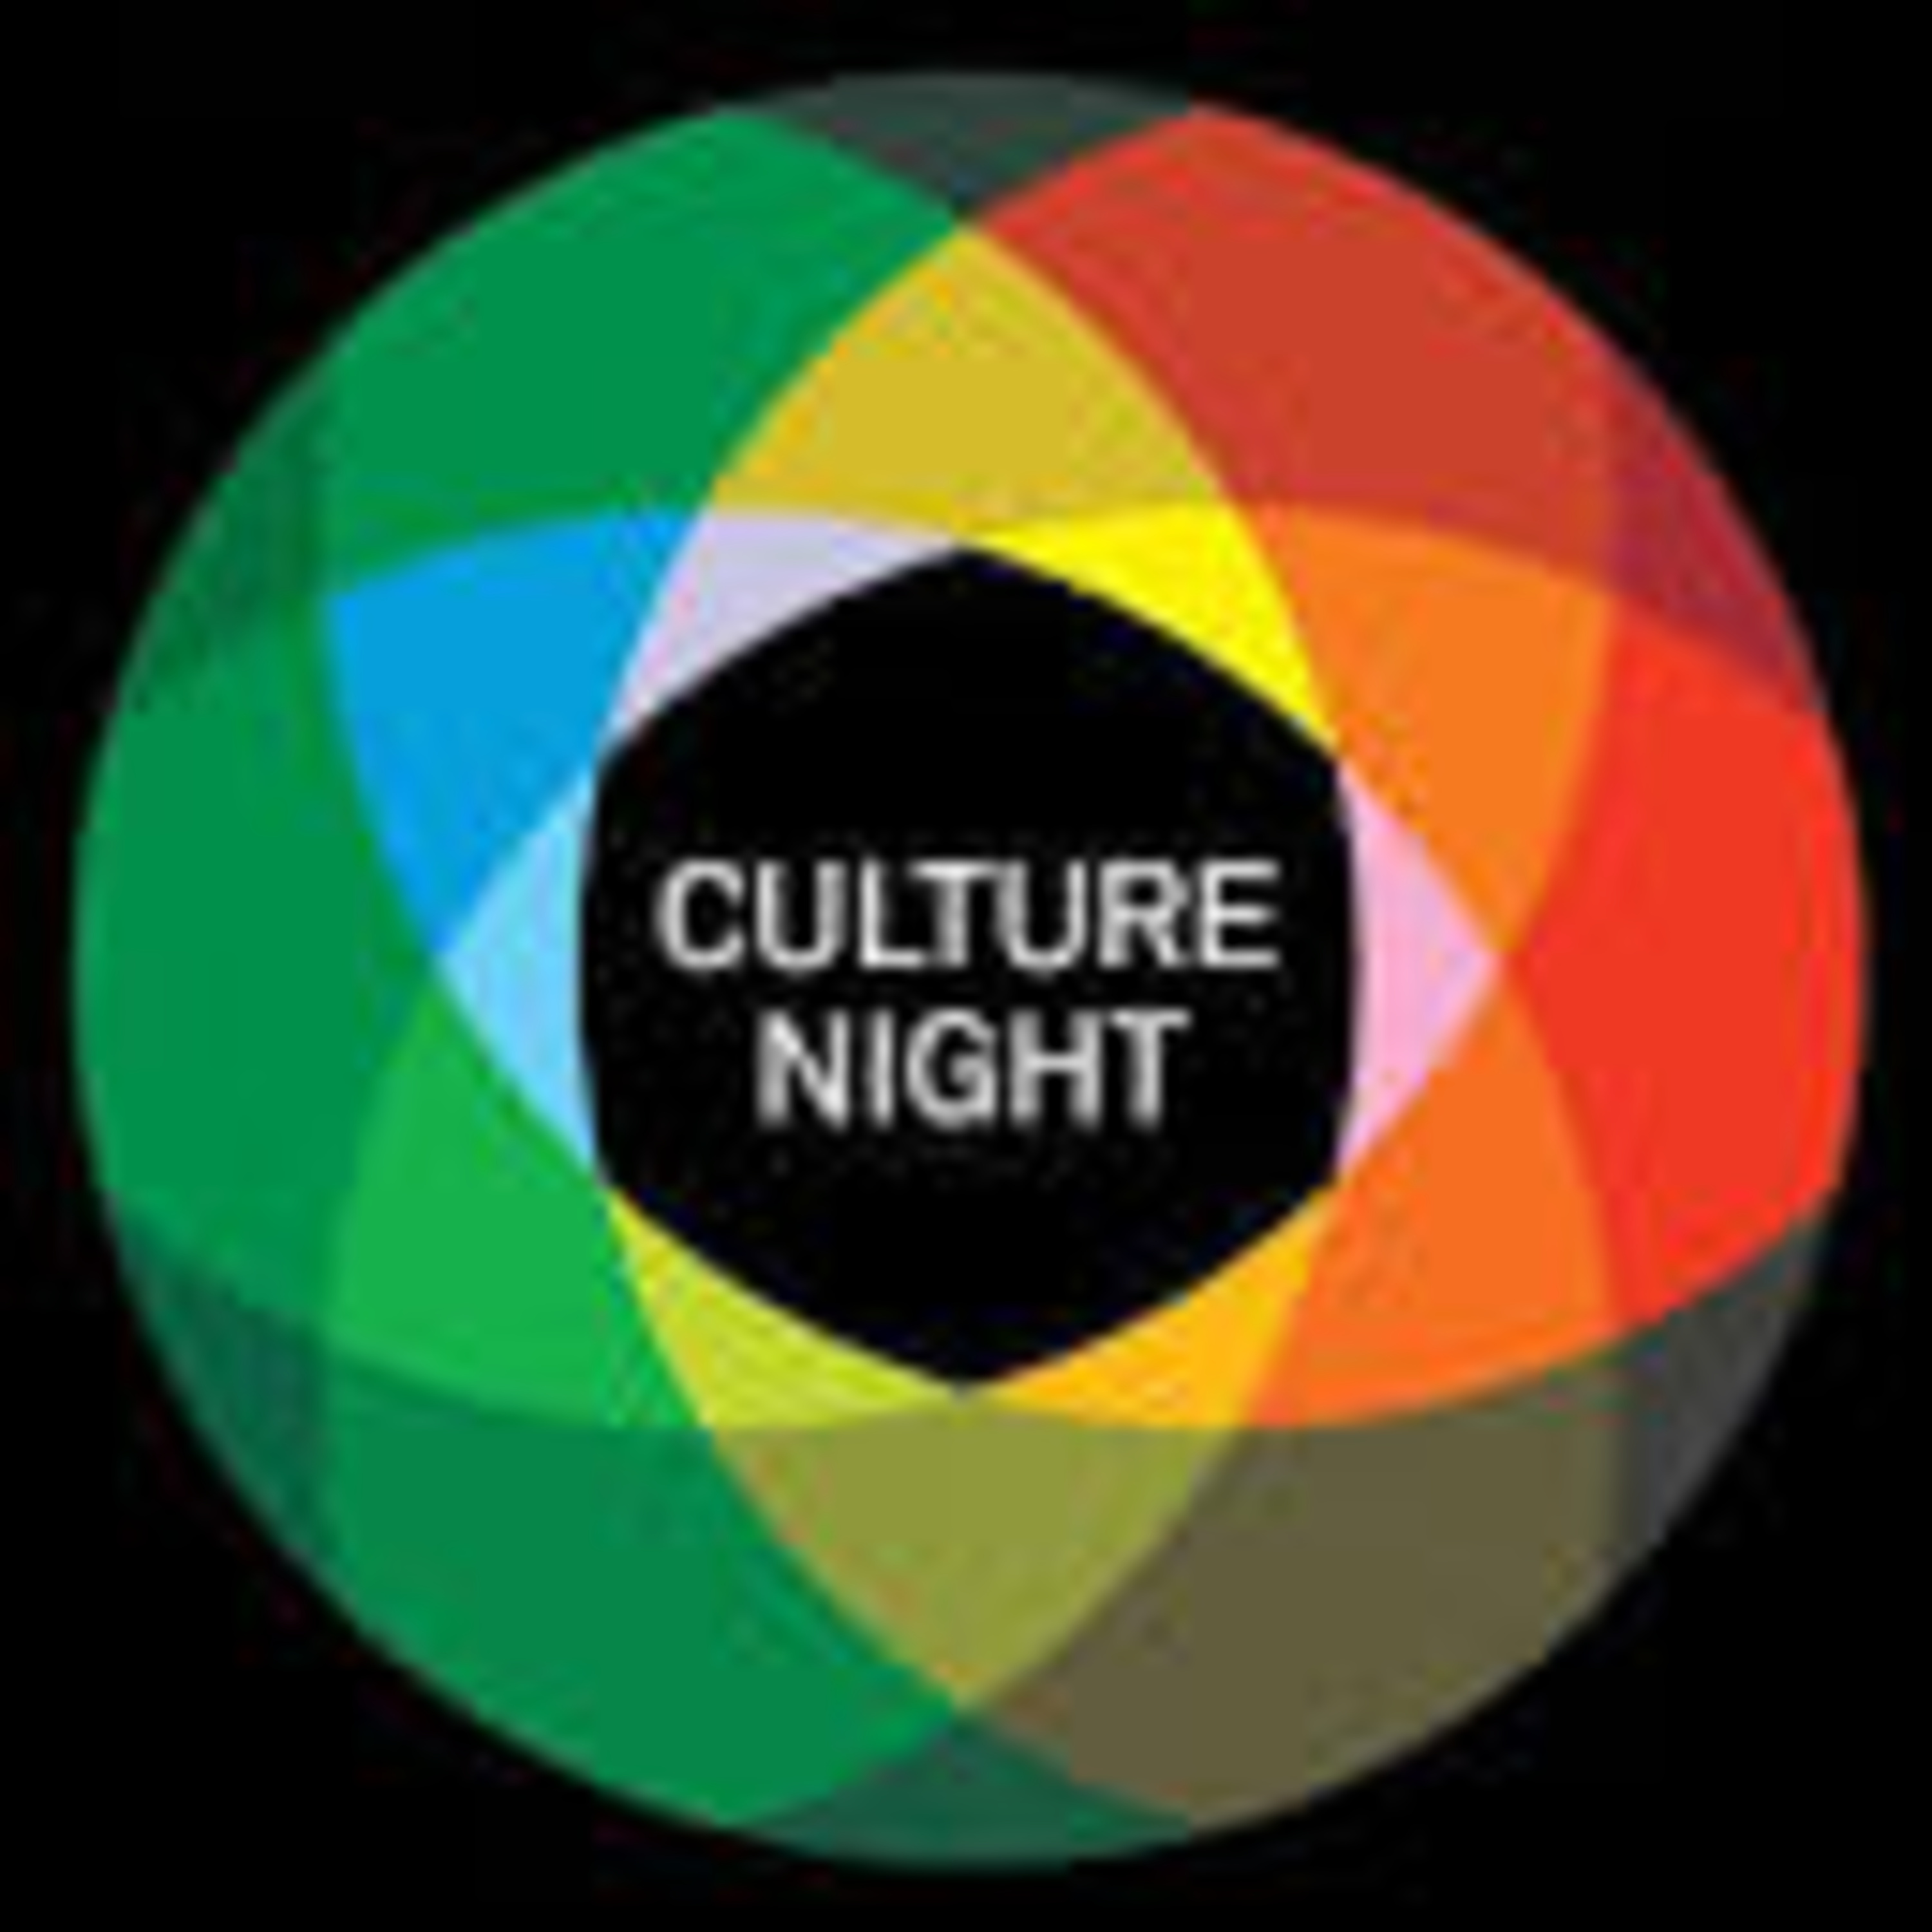 CULTURE NIGHT 2020 MISCELLANY - DESMOND SCRIBBLERS